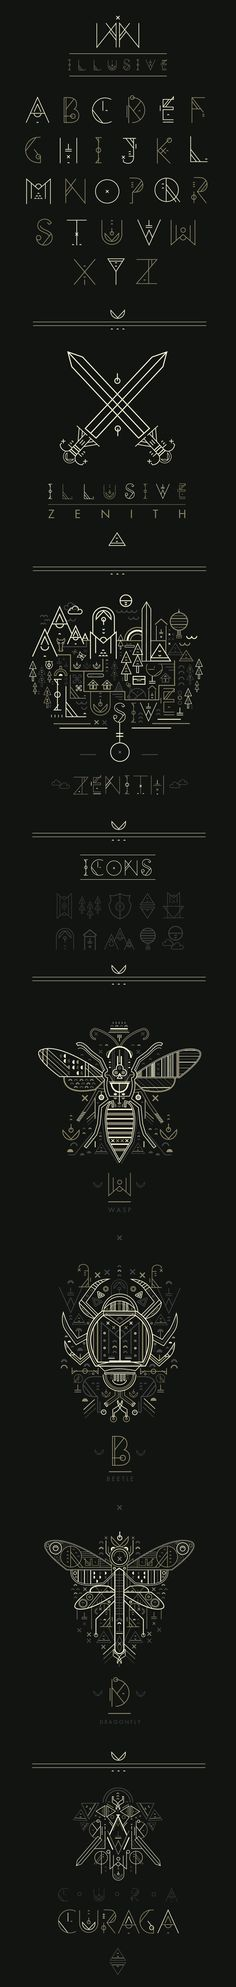 Illusive by Petros Afshar, via Behance  Nice outlines